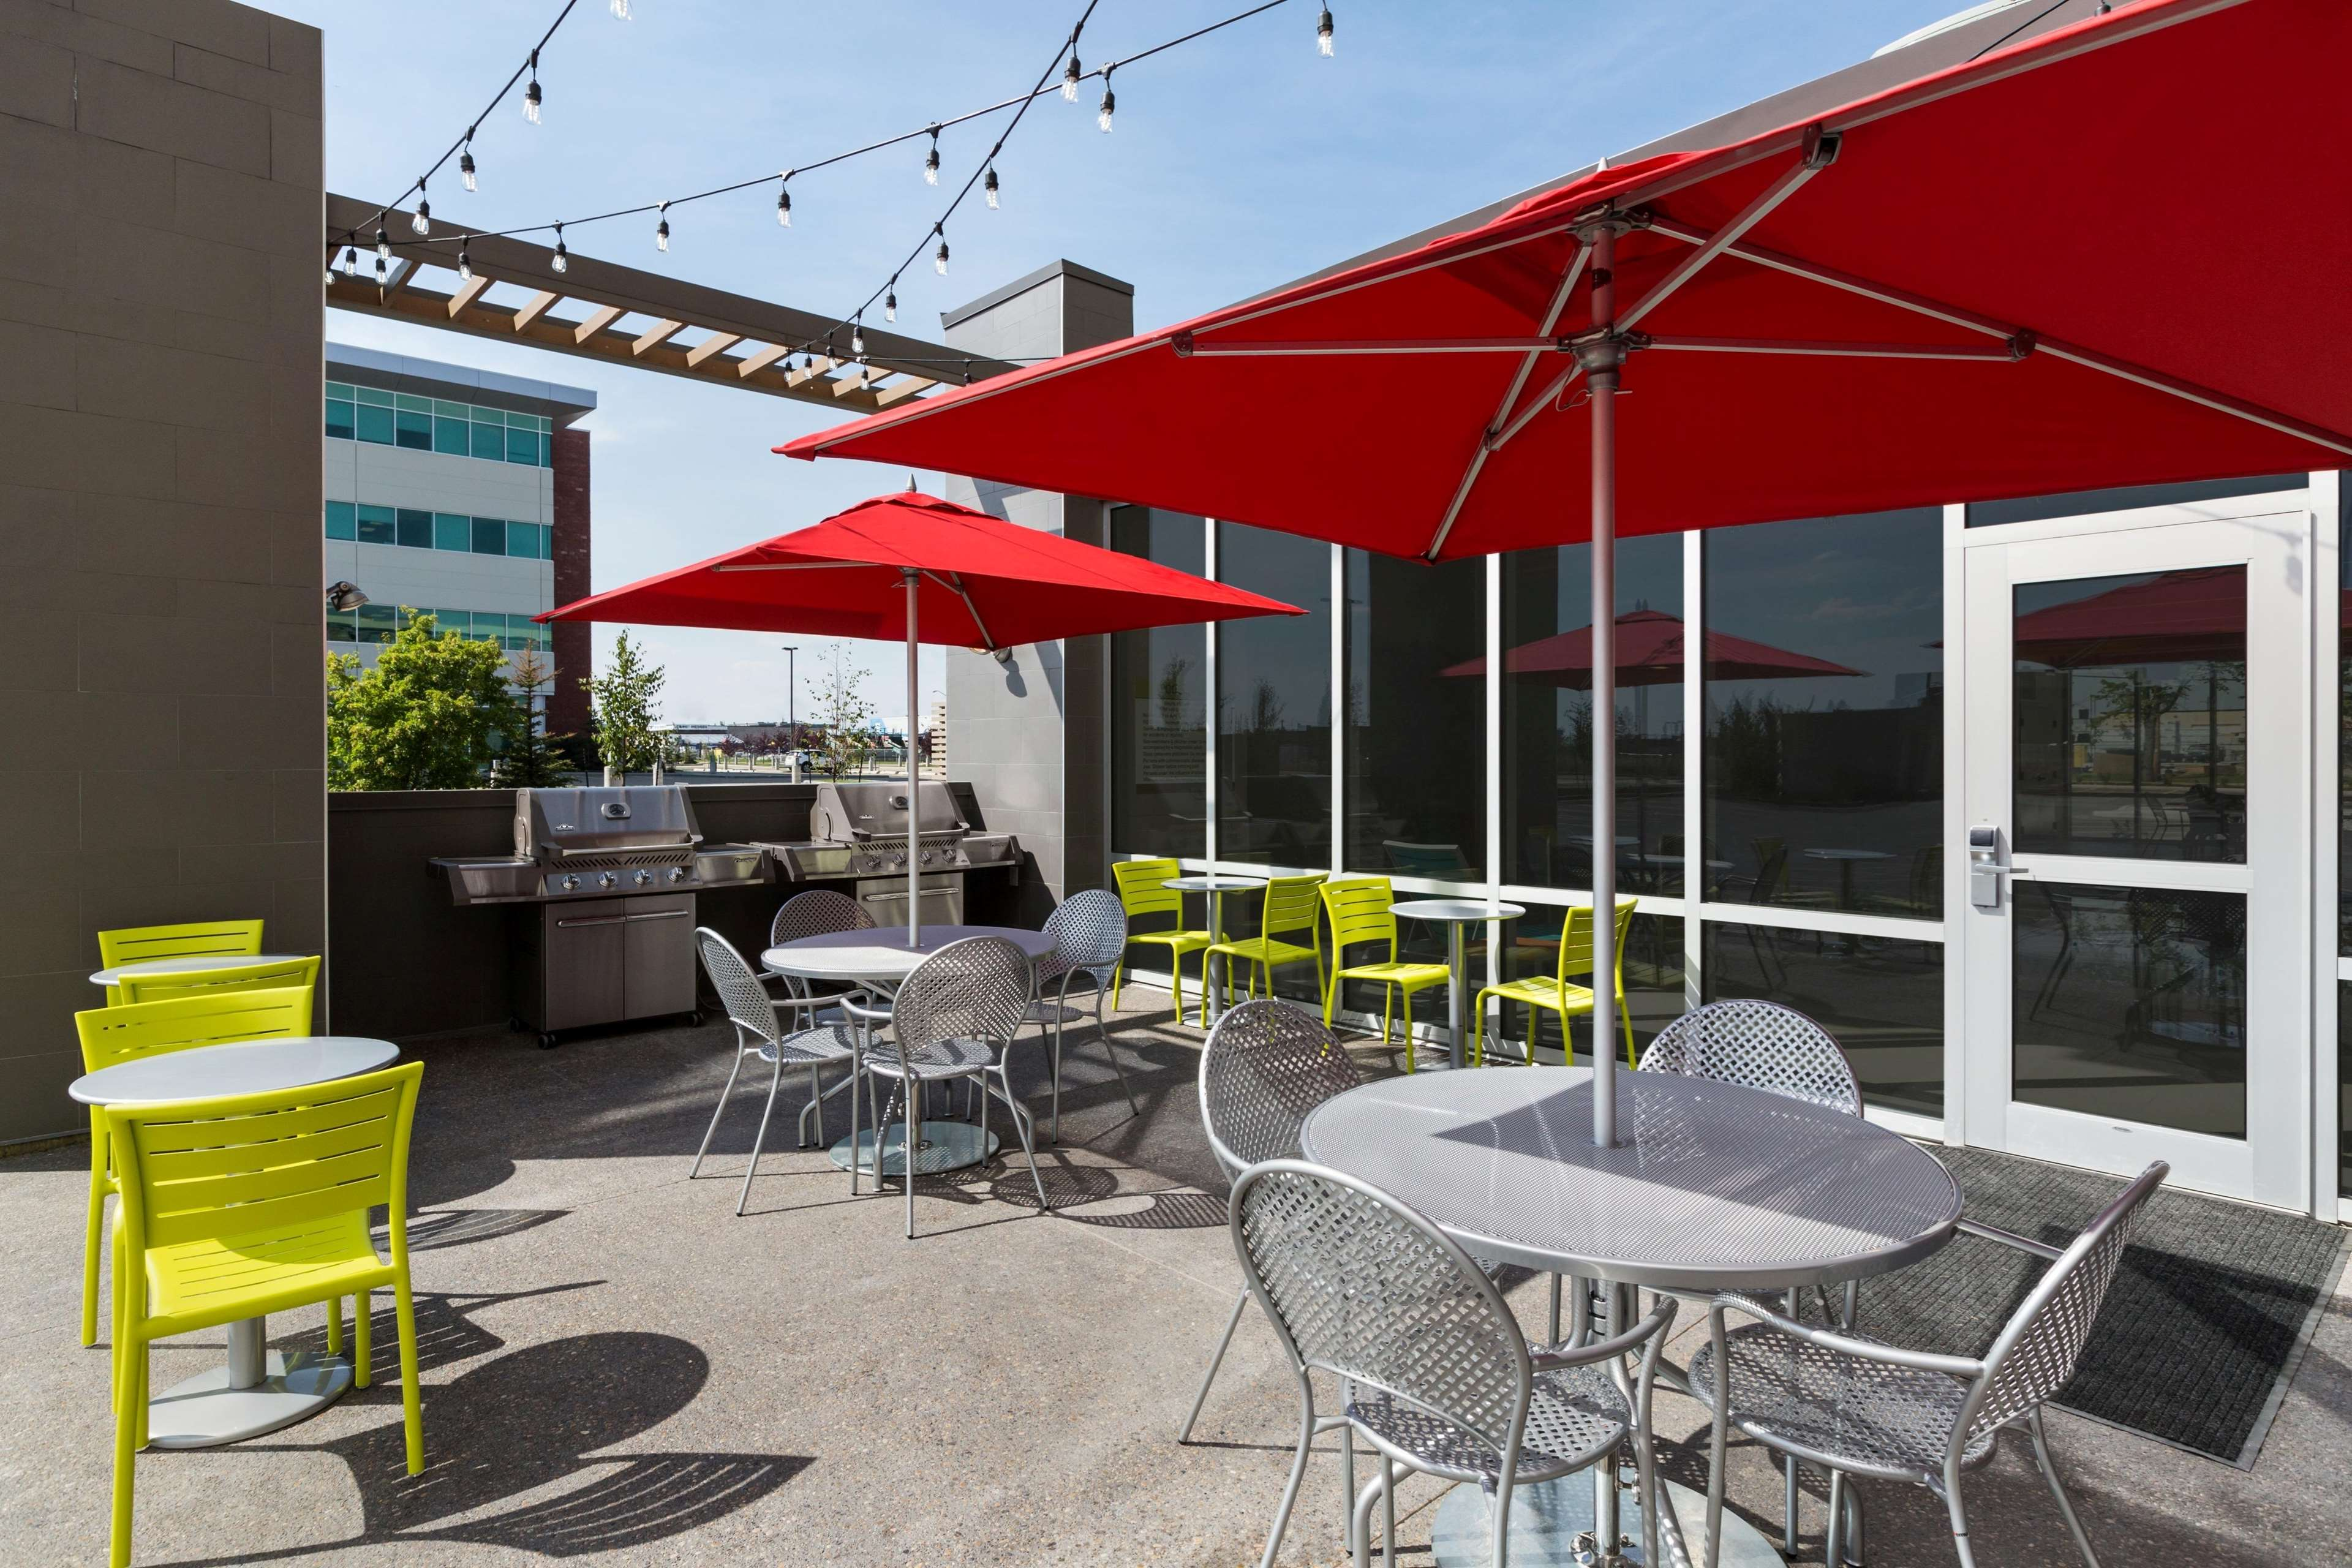 Home2 Suites by Hilton West Edmonton, Alberta, Canada à Edmonton: Patio with BBQ Grill Daytime